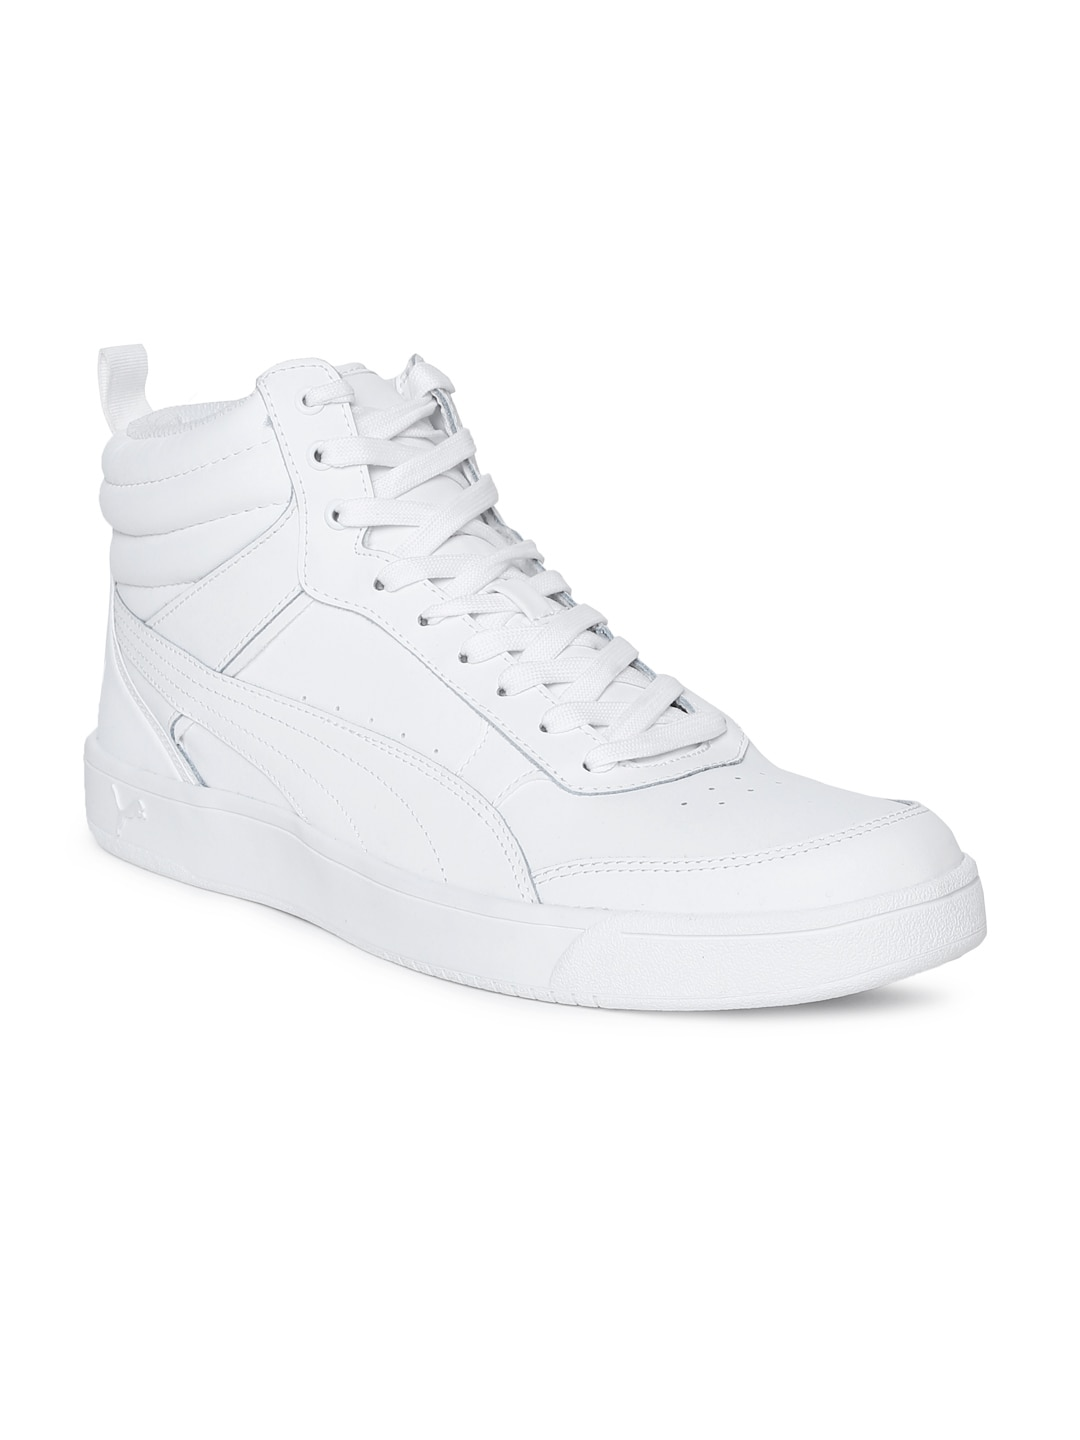 9f71bc27a3 Puma Men White Perforations Leather Mid-Top Sneakers